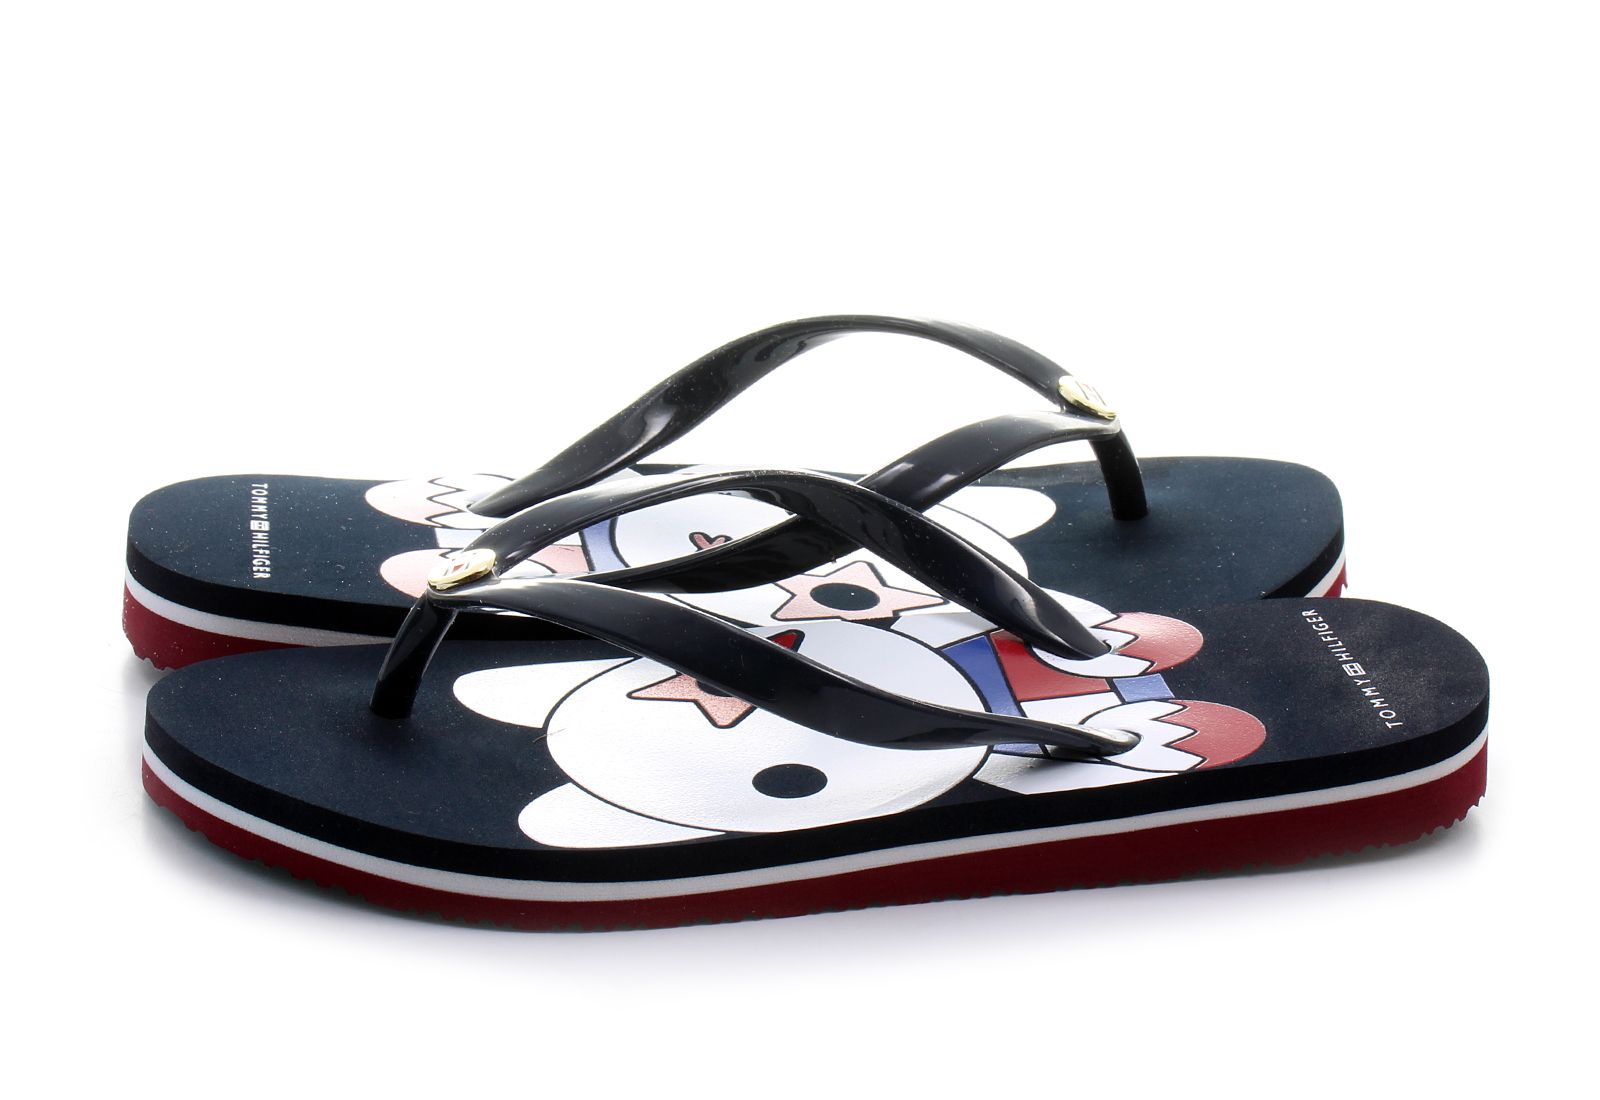 tommy hilfiger slippers mellie mascot 17s 0857 403. Black Bedroom Furniture Sets. Home Design Ideas